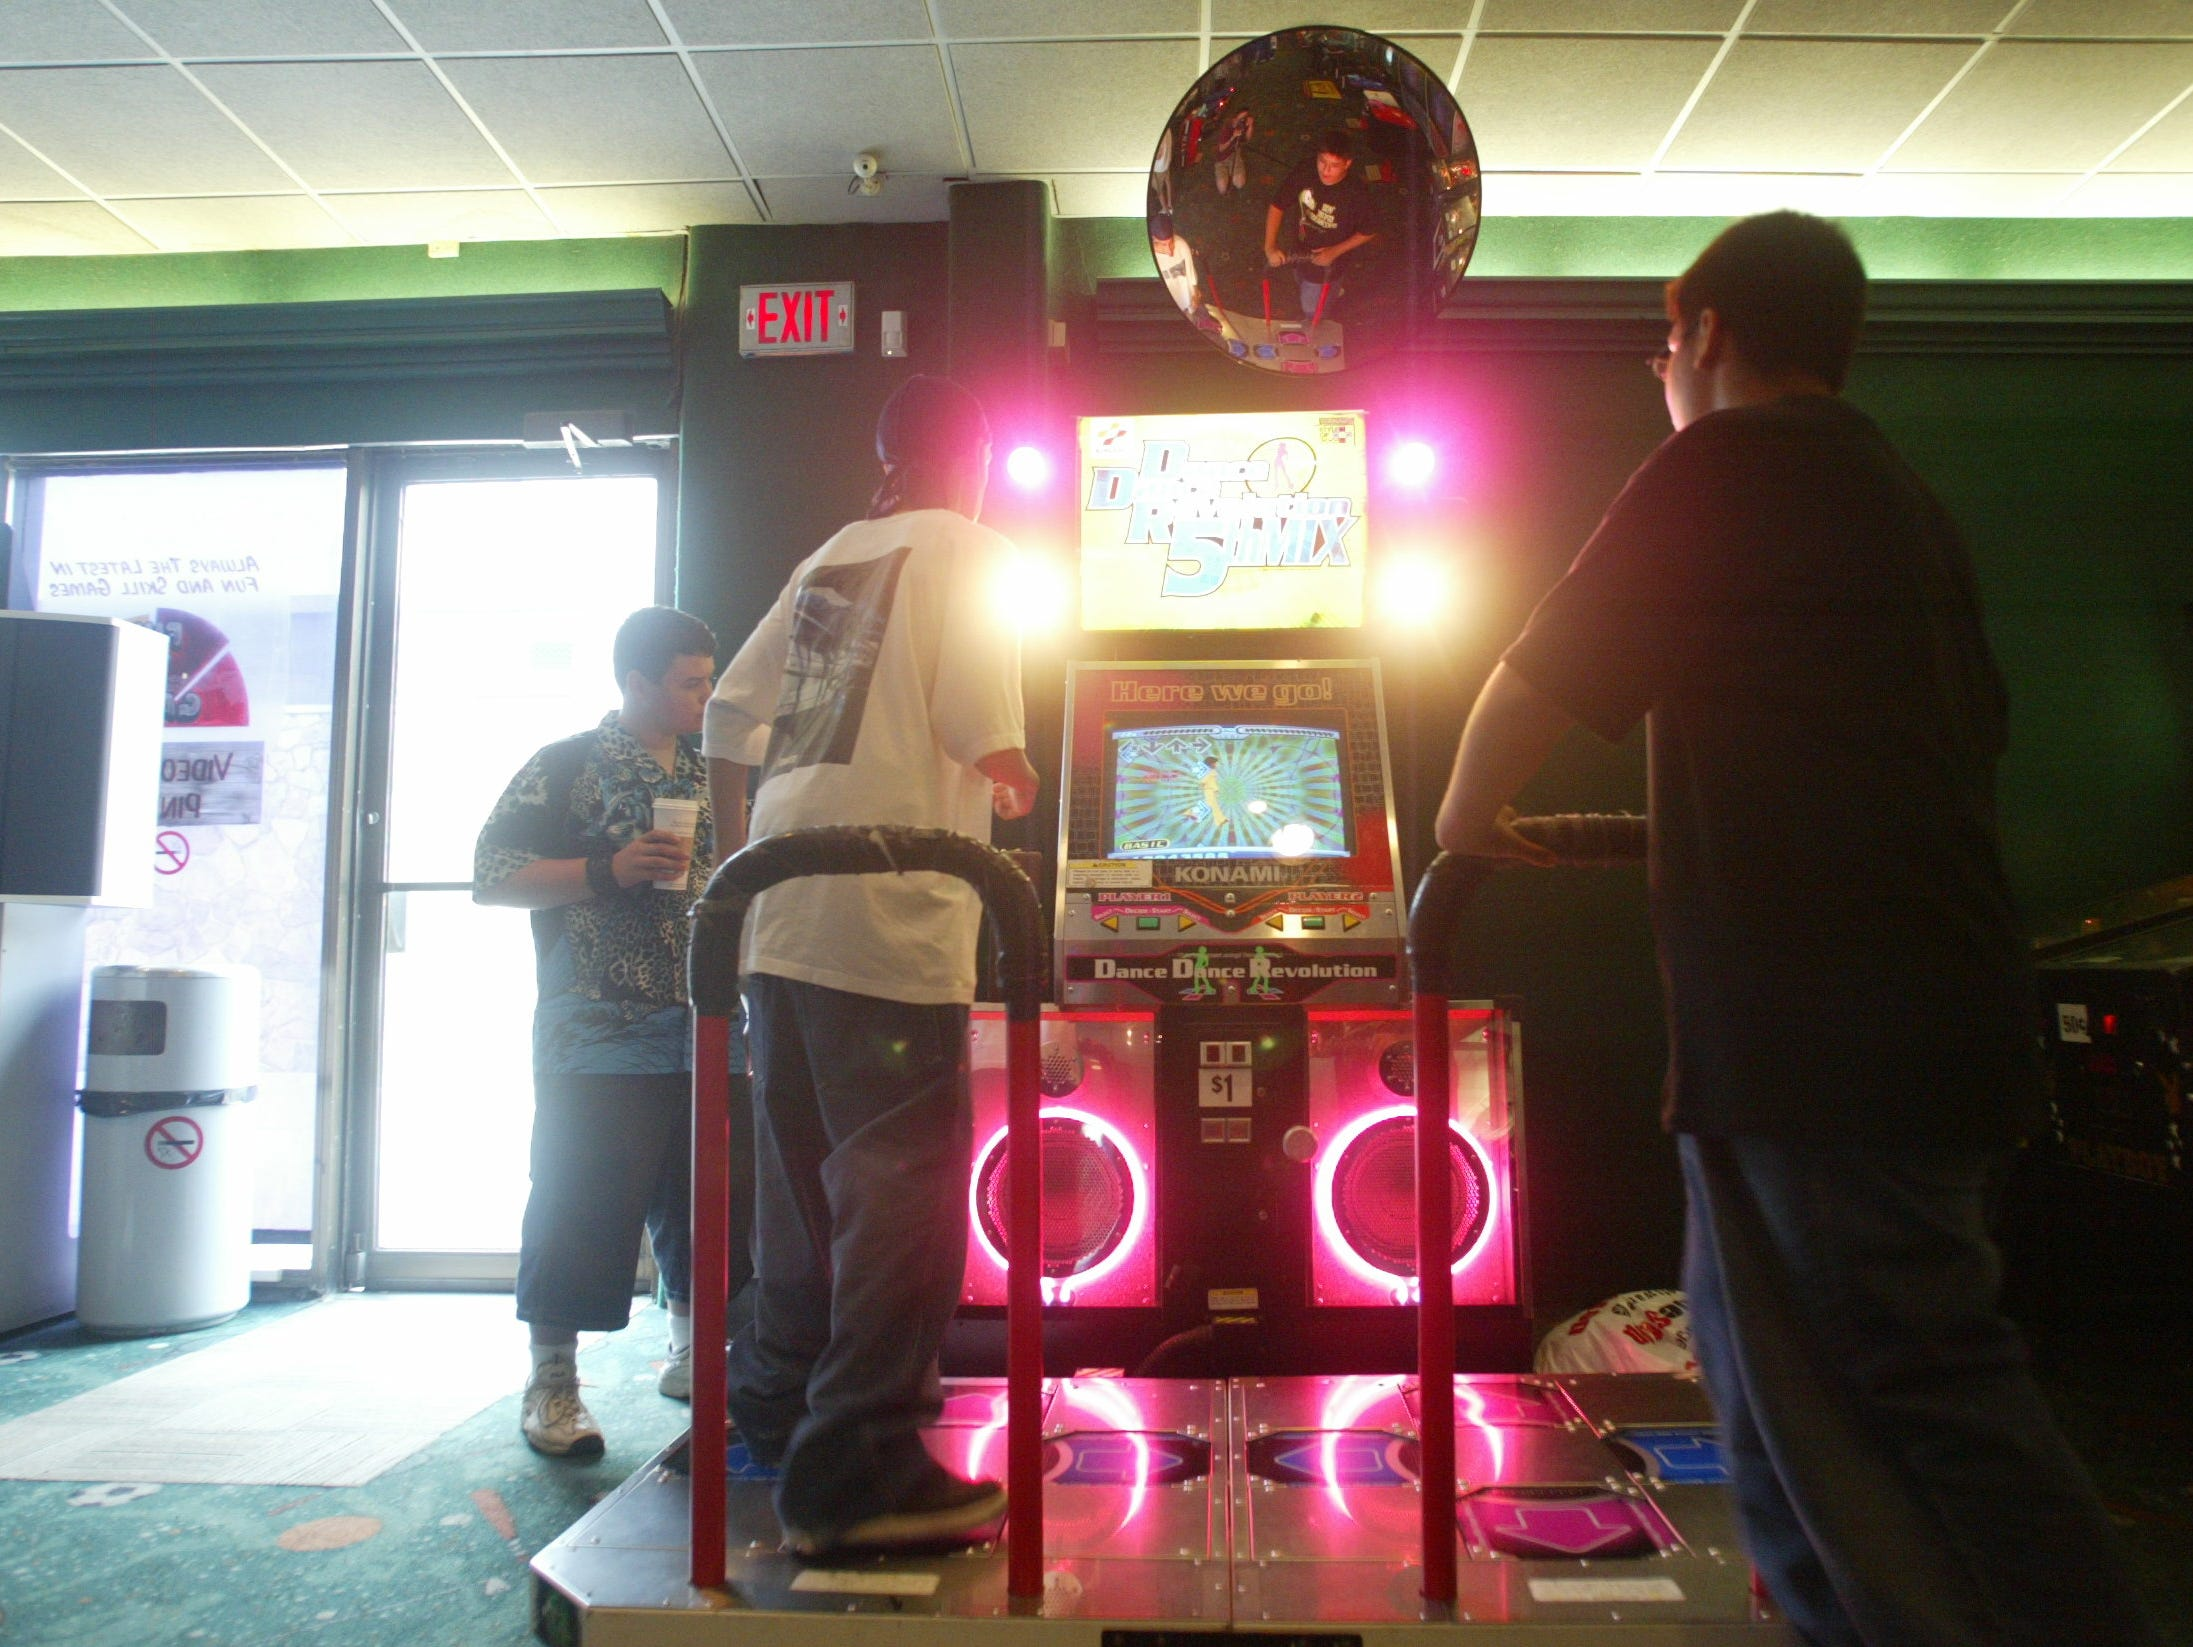 Dance, Dance Revolution machine at Fun N Games at Willowbrook Mall in Wayne.